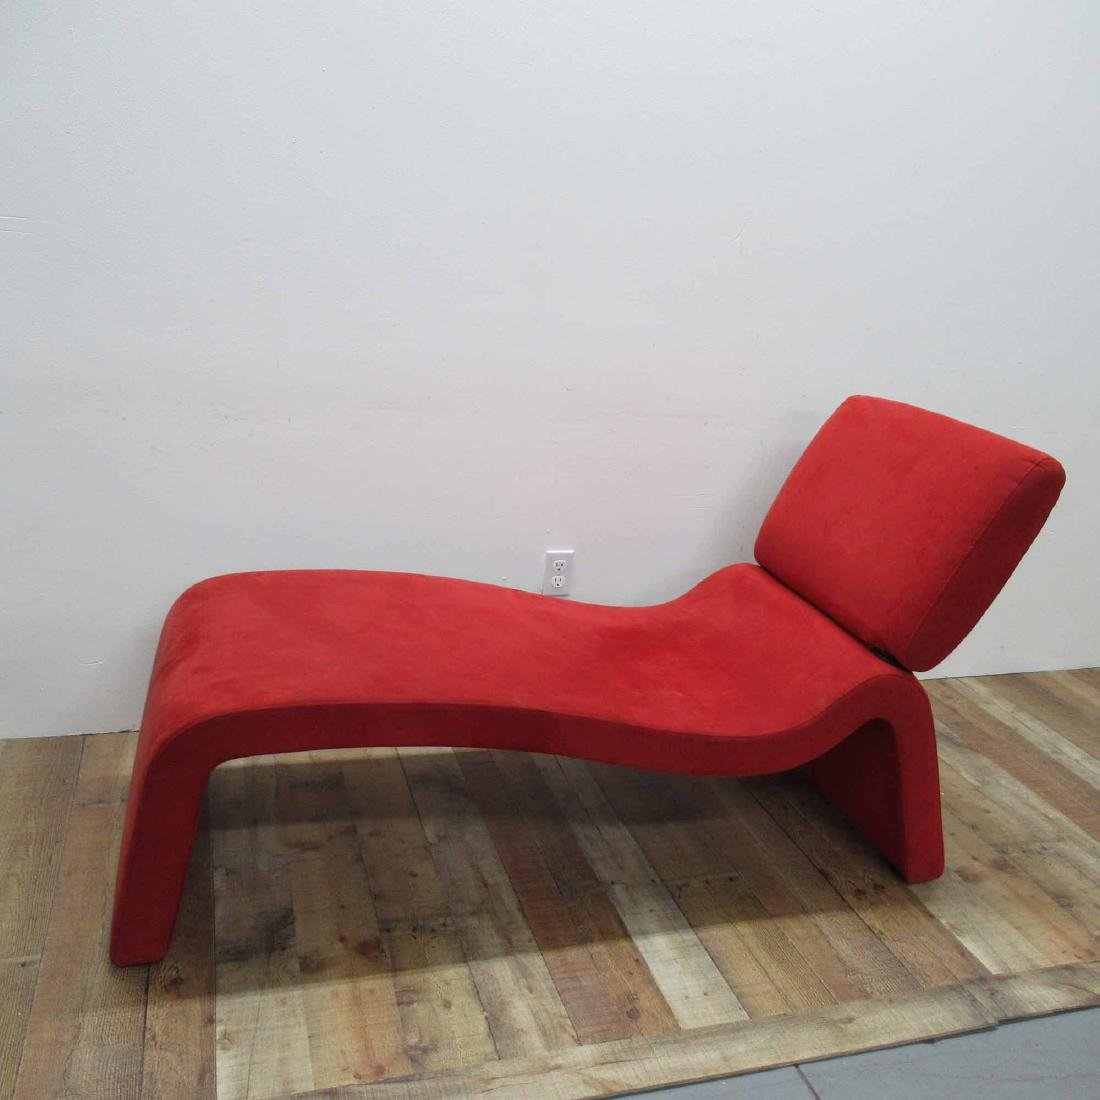 RED SUEDE UPHOLSTERED CHAISE LOUNGE CHAIR